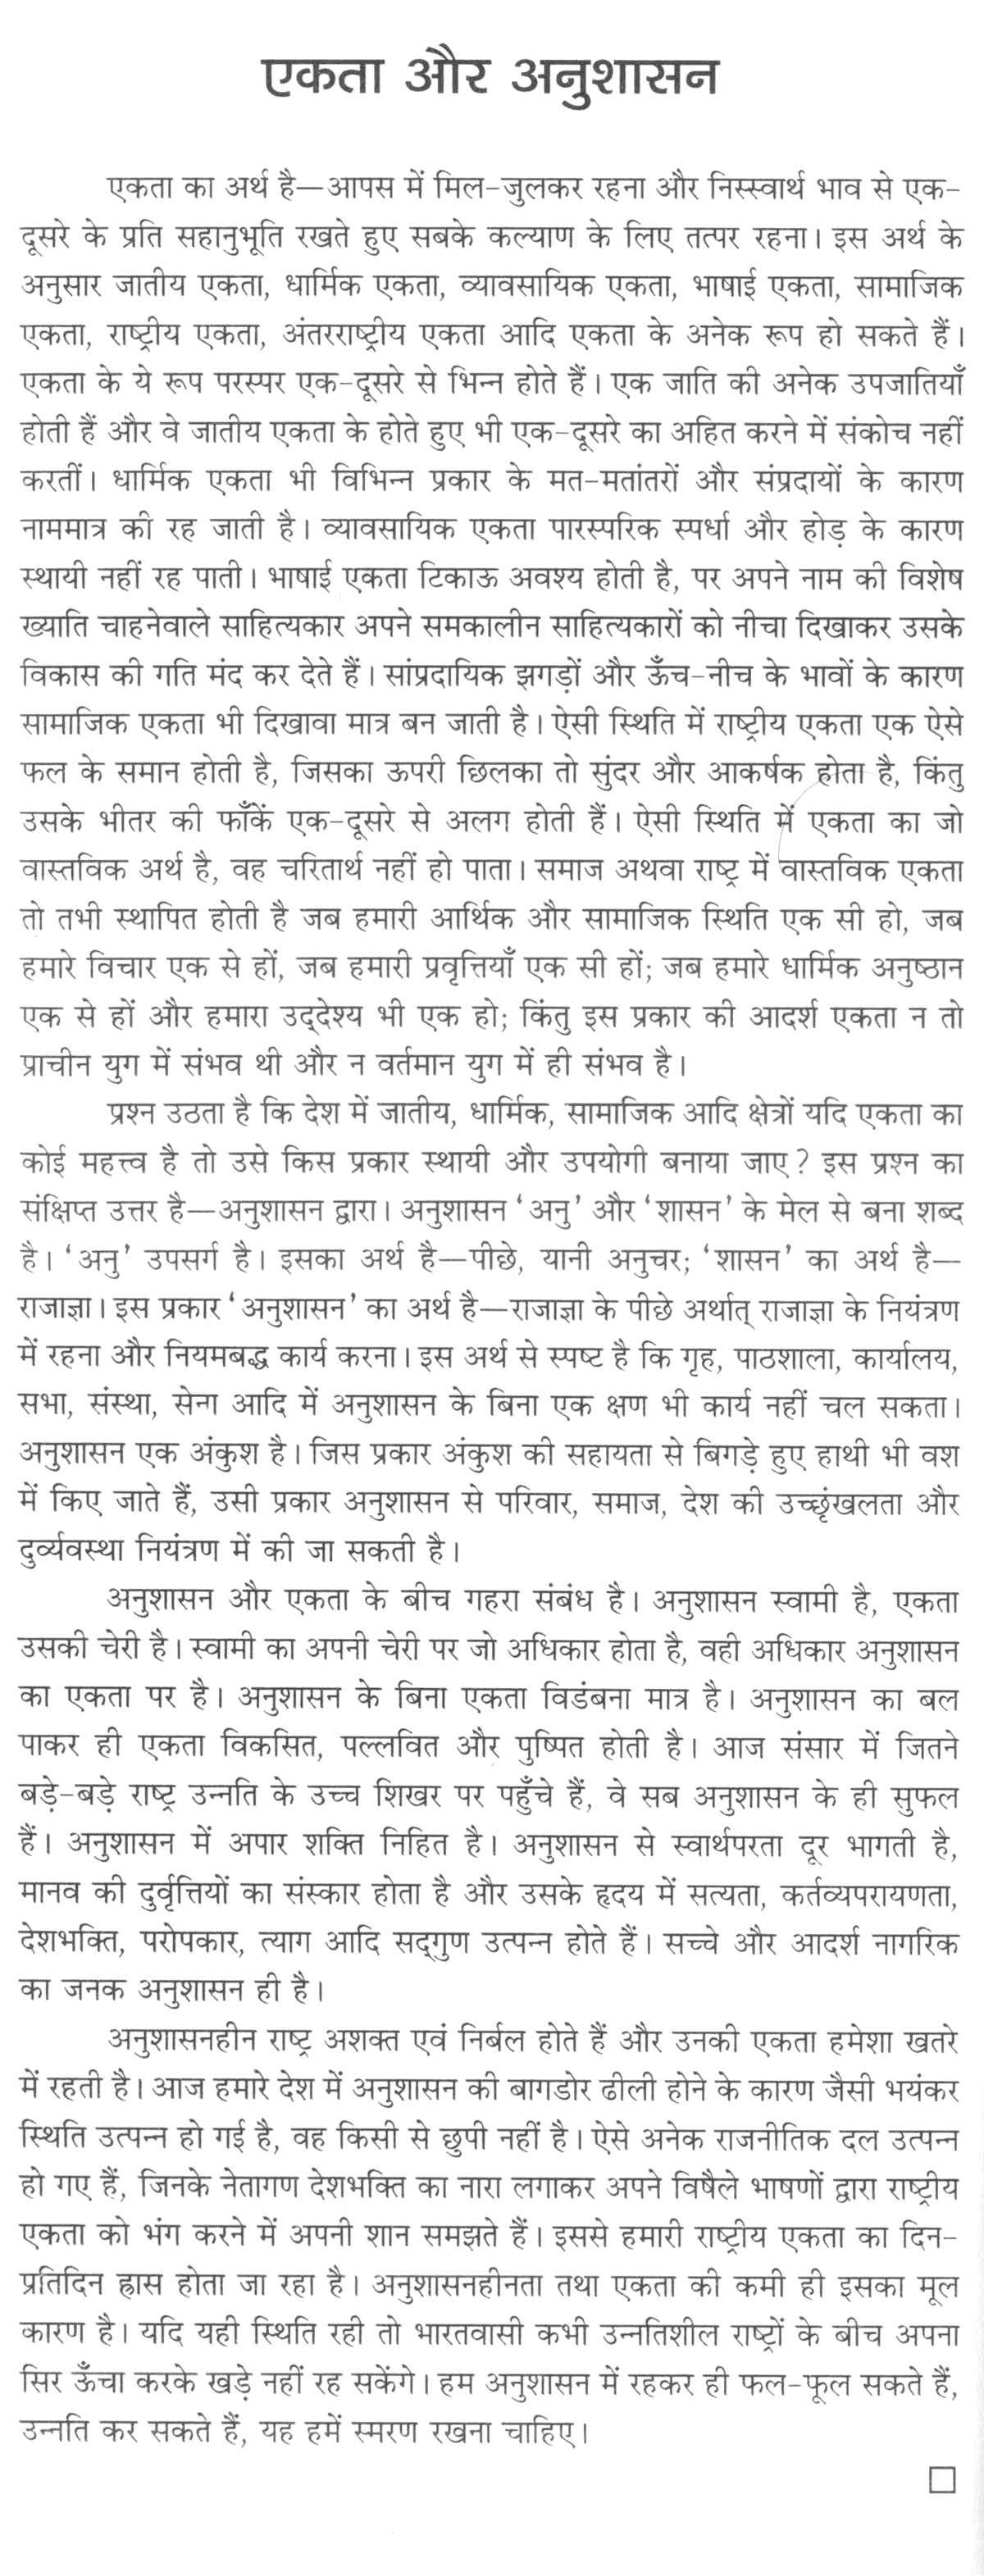 006 Essay Example Best Solutions Of On Unity In Diversity Gxart Stunning Culture India Fascinating Hindi Importance National Full